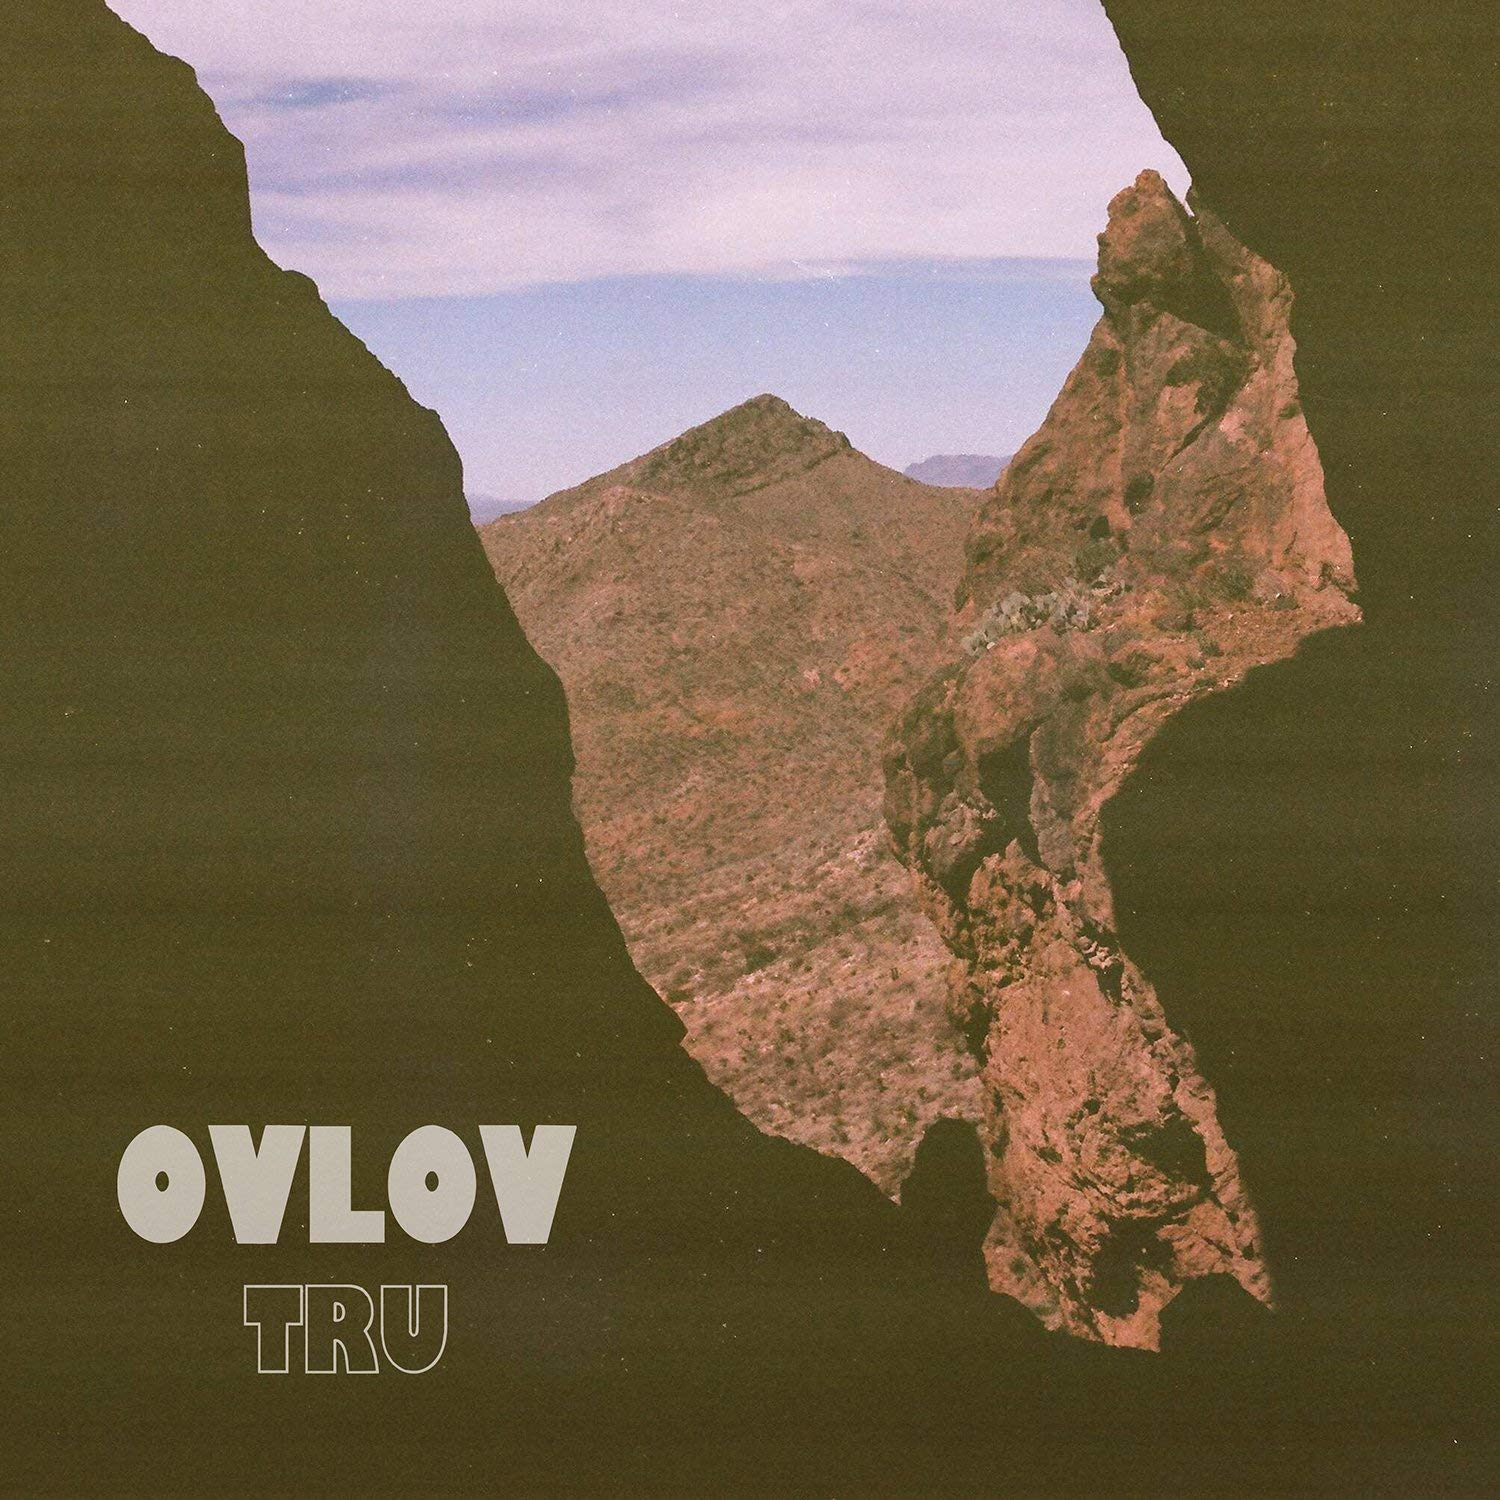 Ovlov Tru Album Review The Fire Note